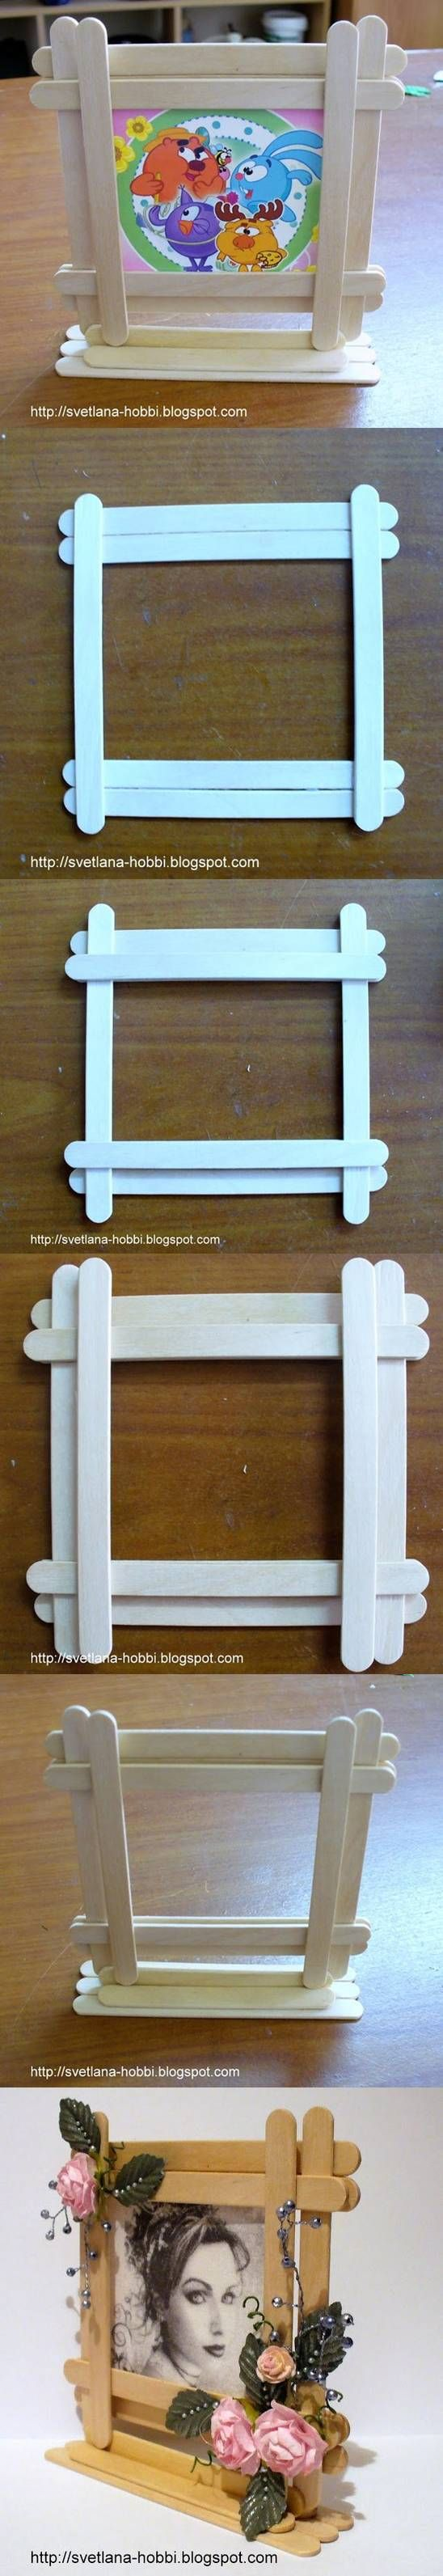 DIY Easy Popsicles Picture Frame | UsefulDIY.com Follow Us on Facebook ==> http://www.facebook.com/UsefulDiy